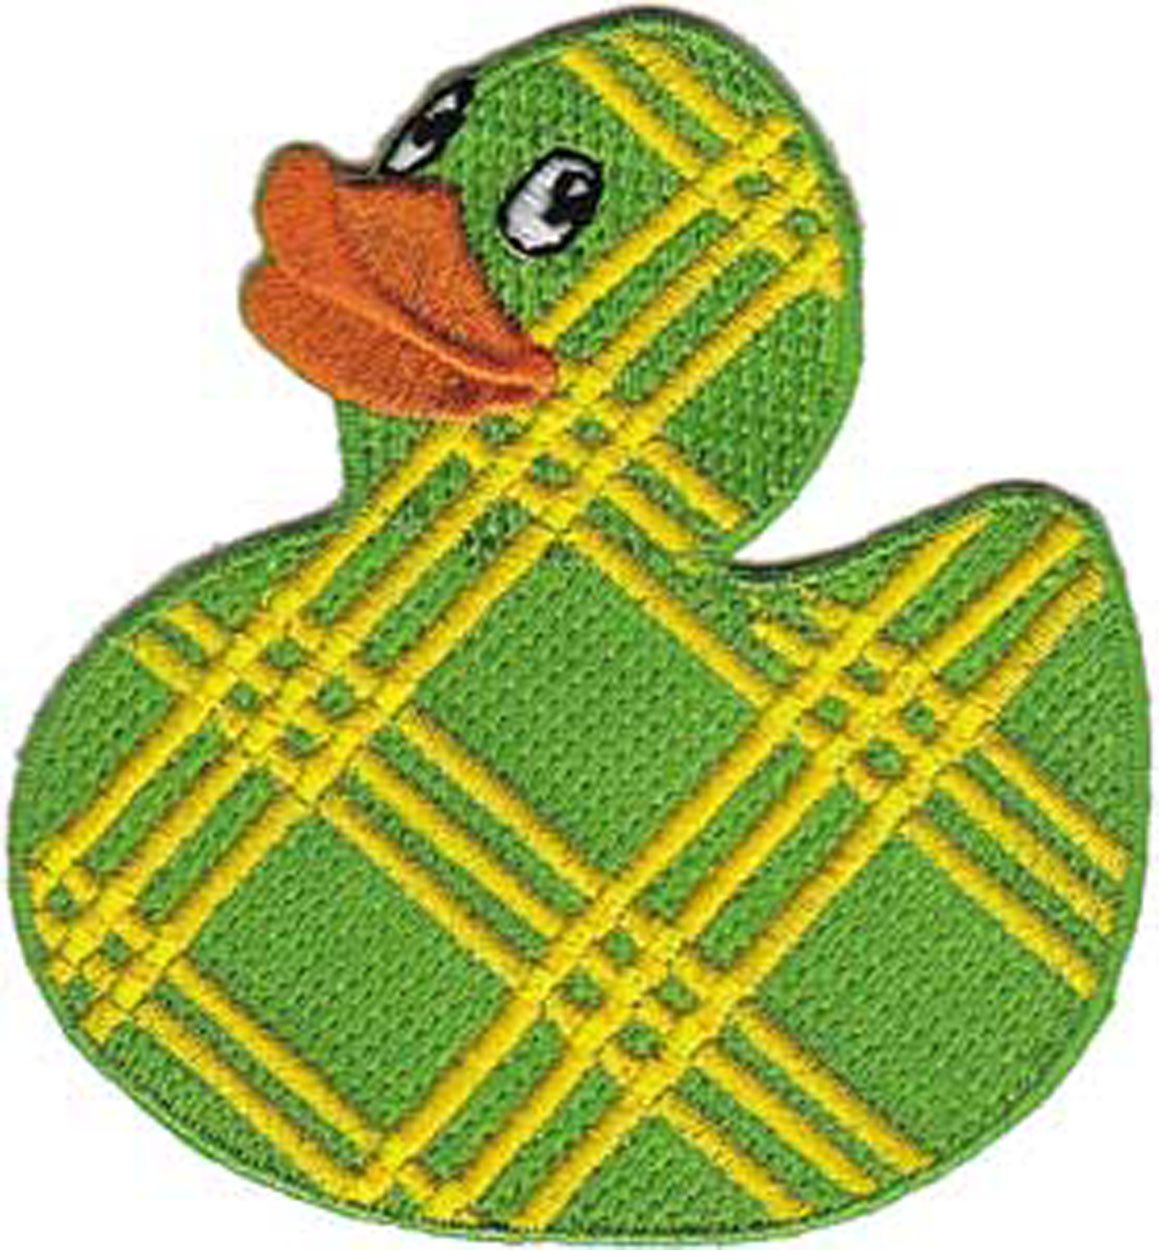 Patch Animals Plaid Rubber Ducky p-3731   B00D40O8DI